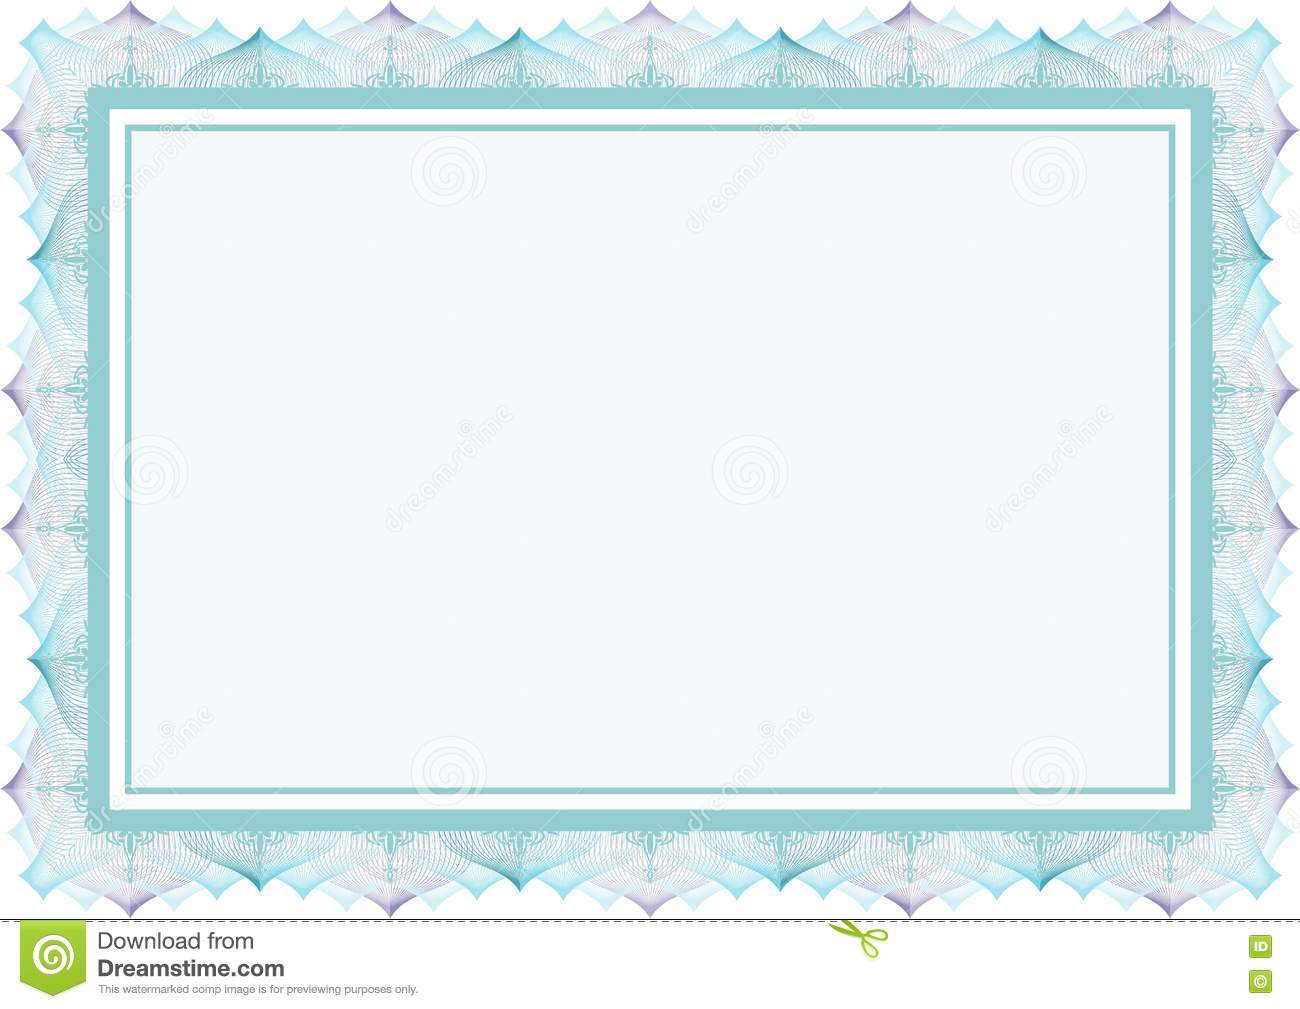 Frame border template guiloche islamic style stock vector frame border template guiloche islamic style thecheapjerseys Images